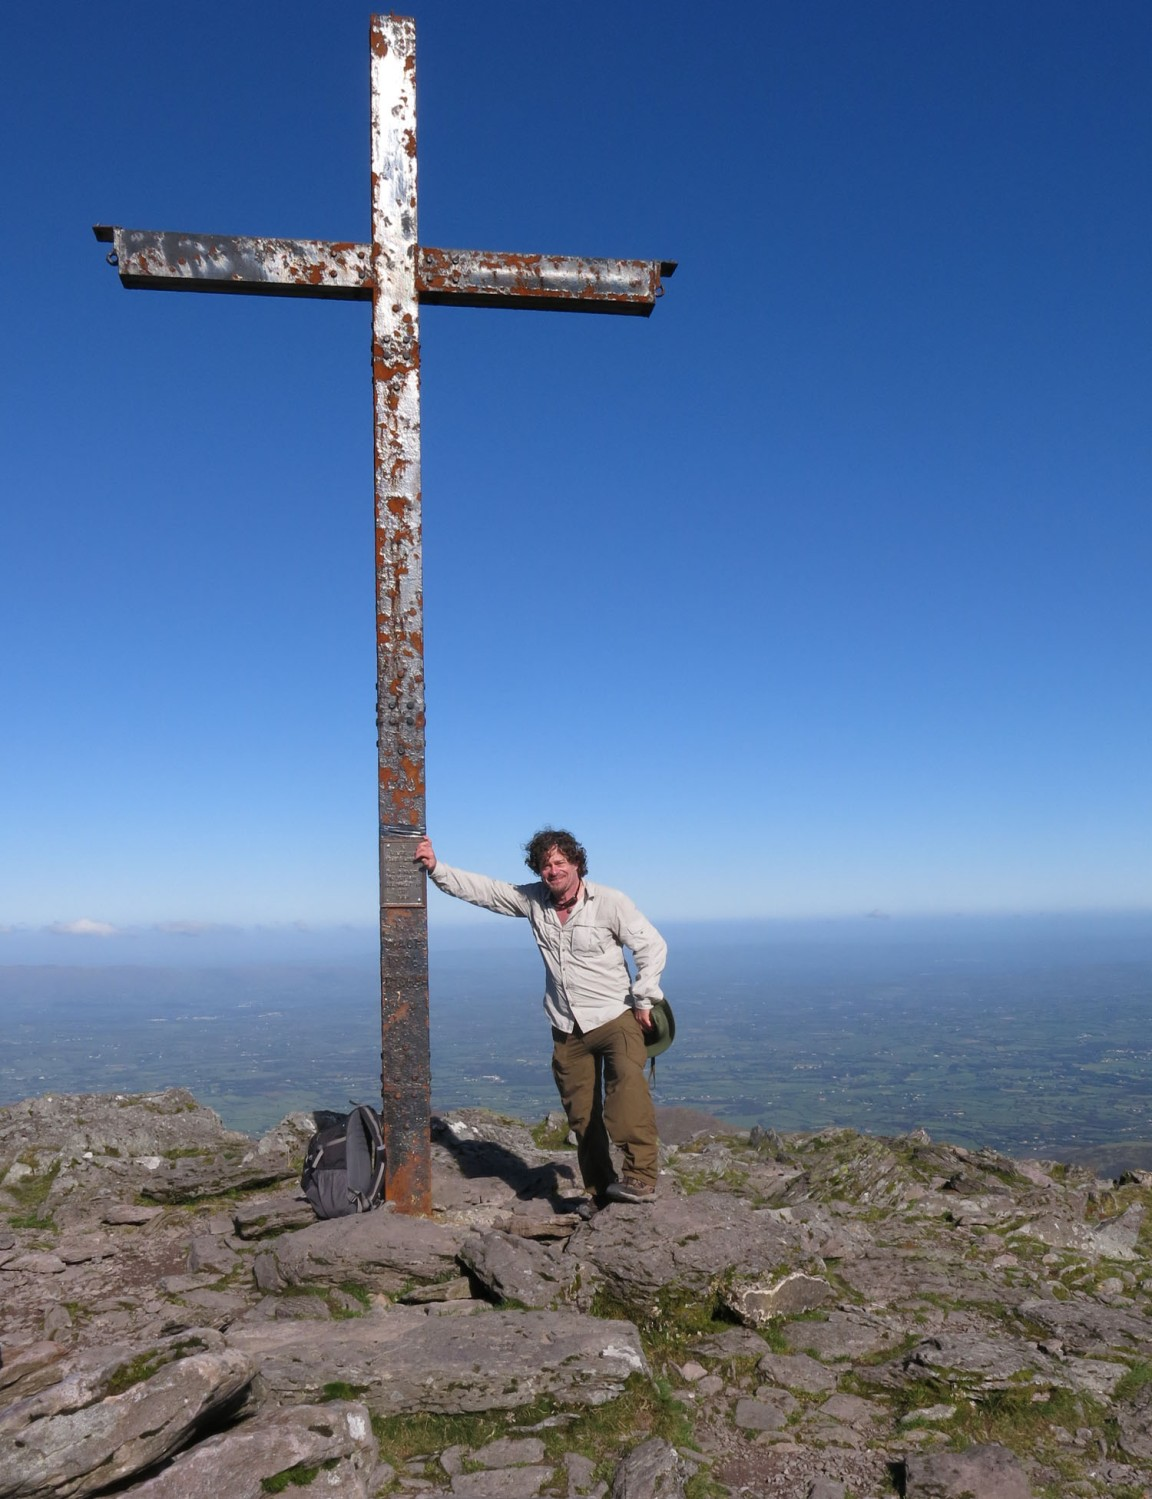 Ireland-Carrauntoohil-Summit-Self-Portrait